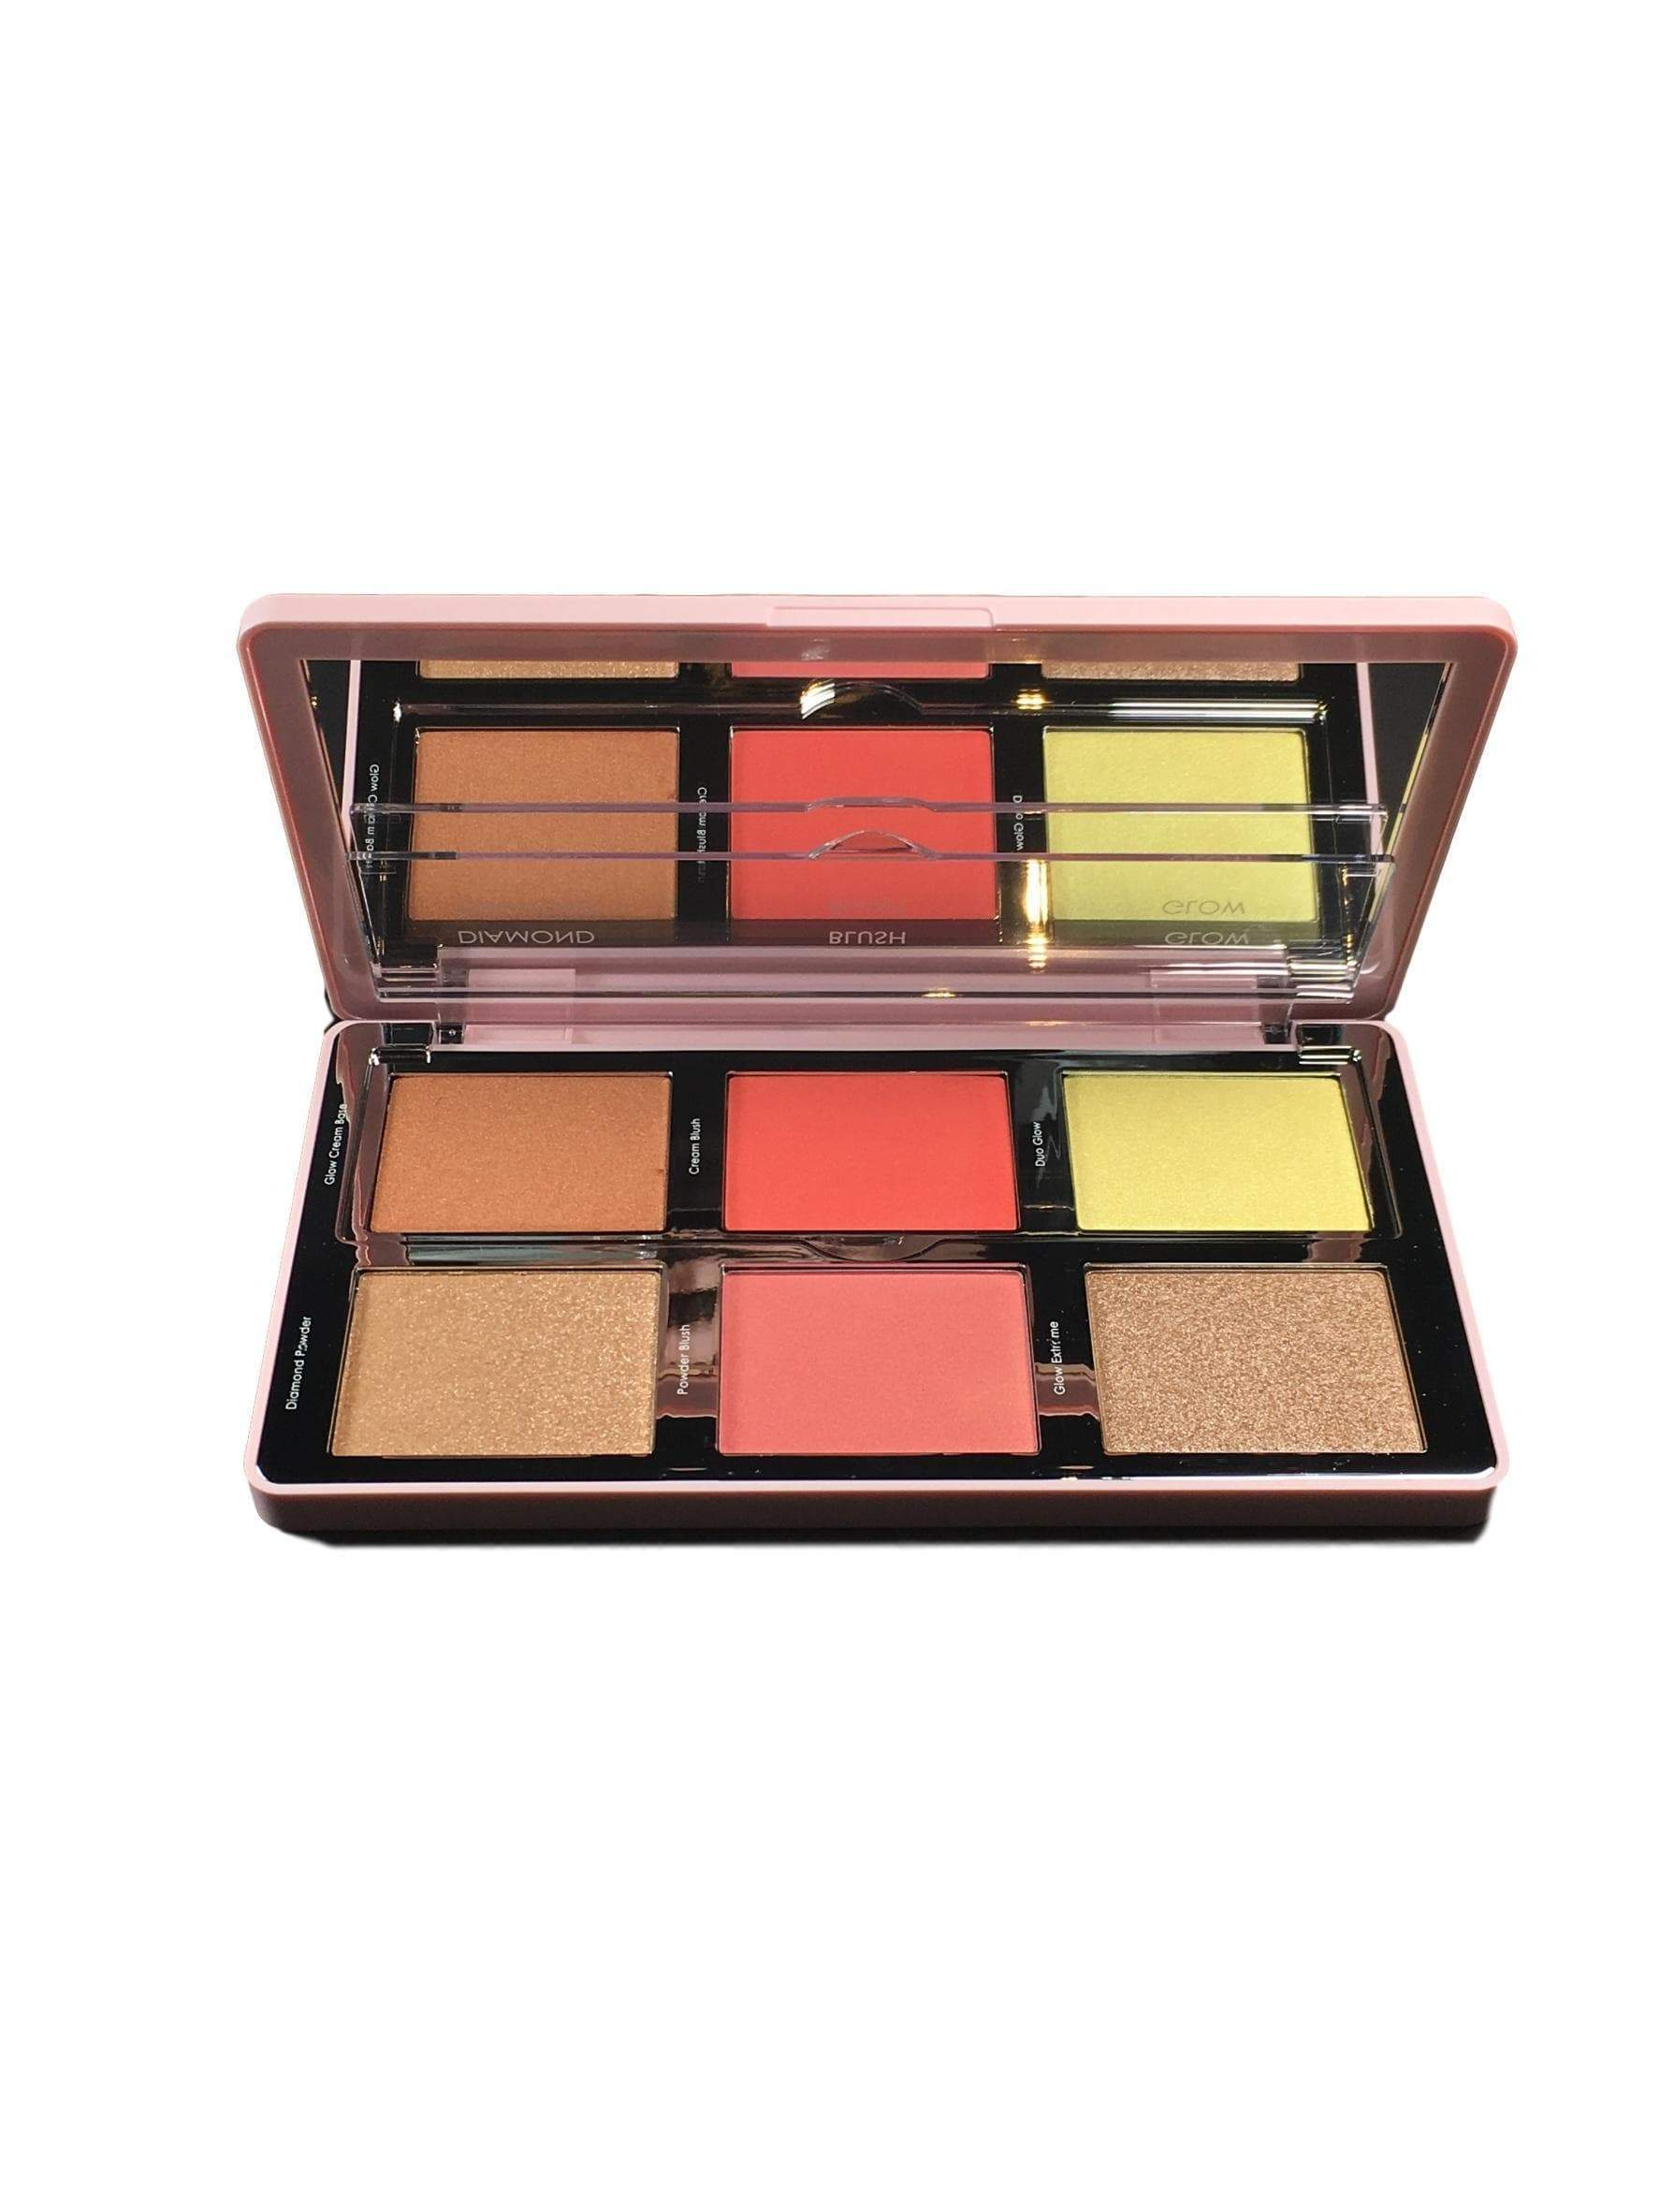 Natasha Denona Diamond & Blush Palette - Citrus, Blush, London Loves Beauty